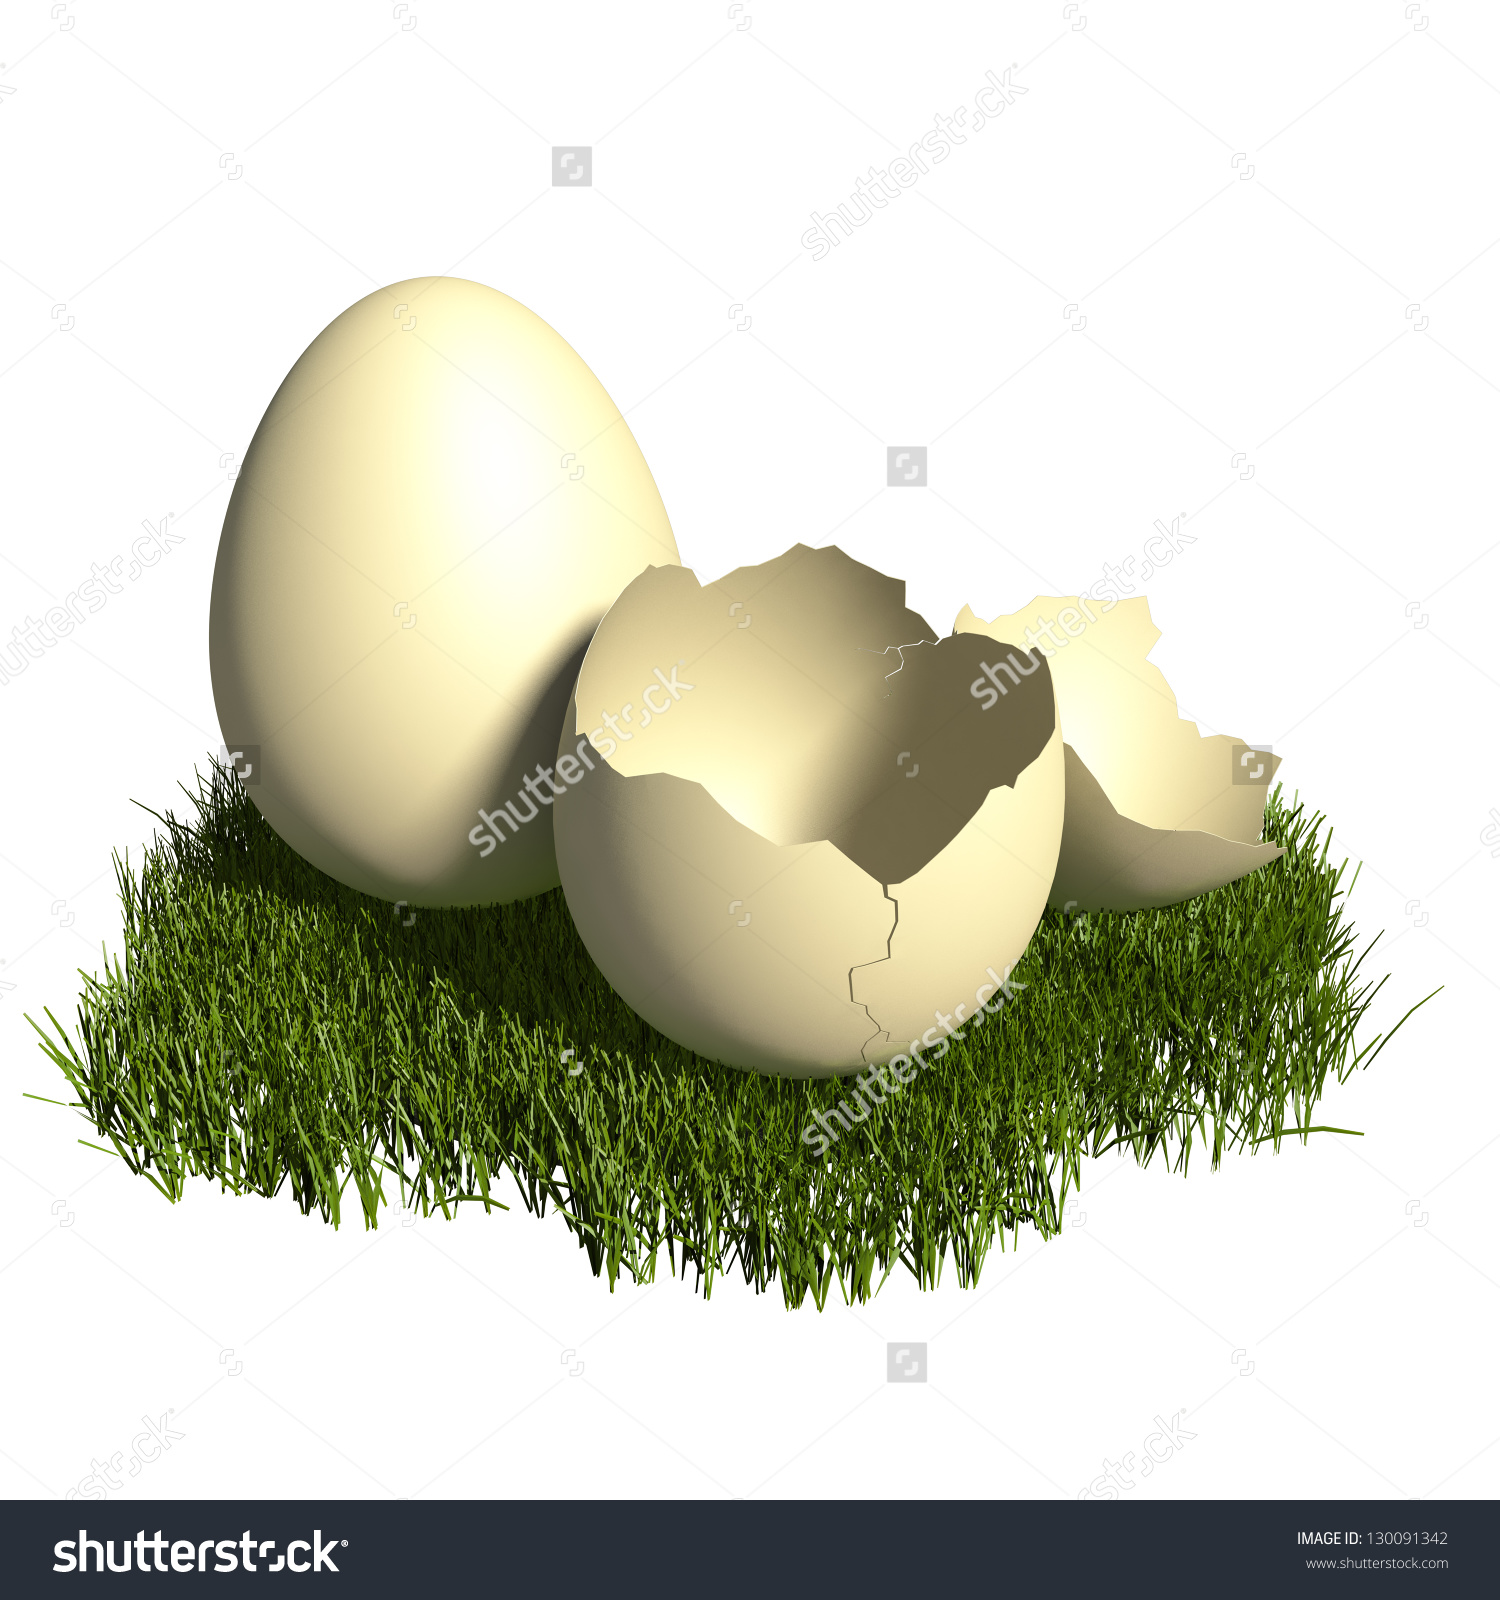 3d Rendered Egg Clipart Illustration.